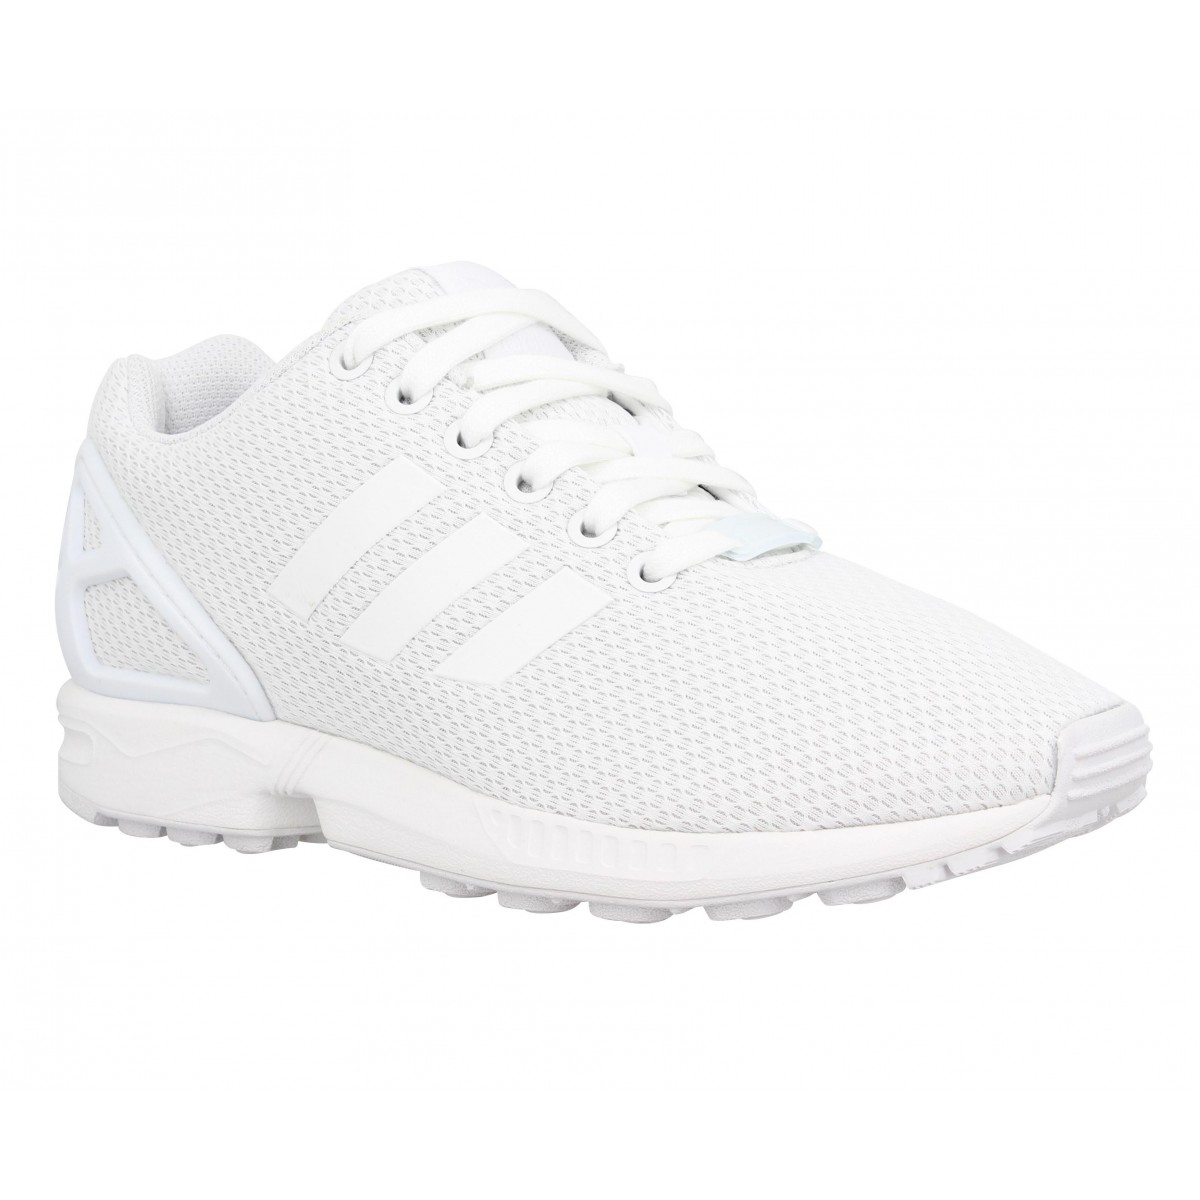 Baskets ADIDAS ZX Flux toile Homme Blanc